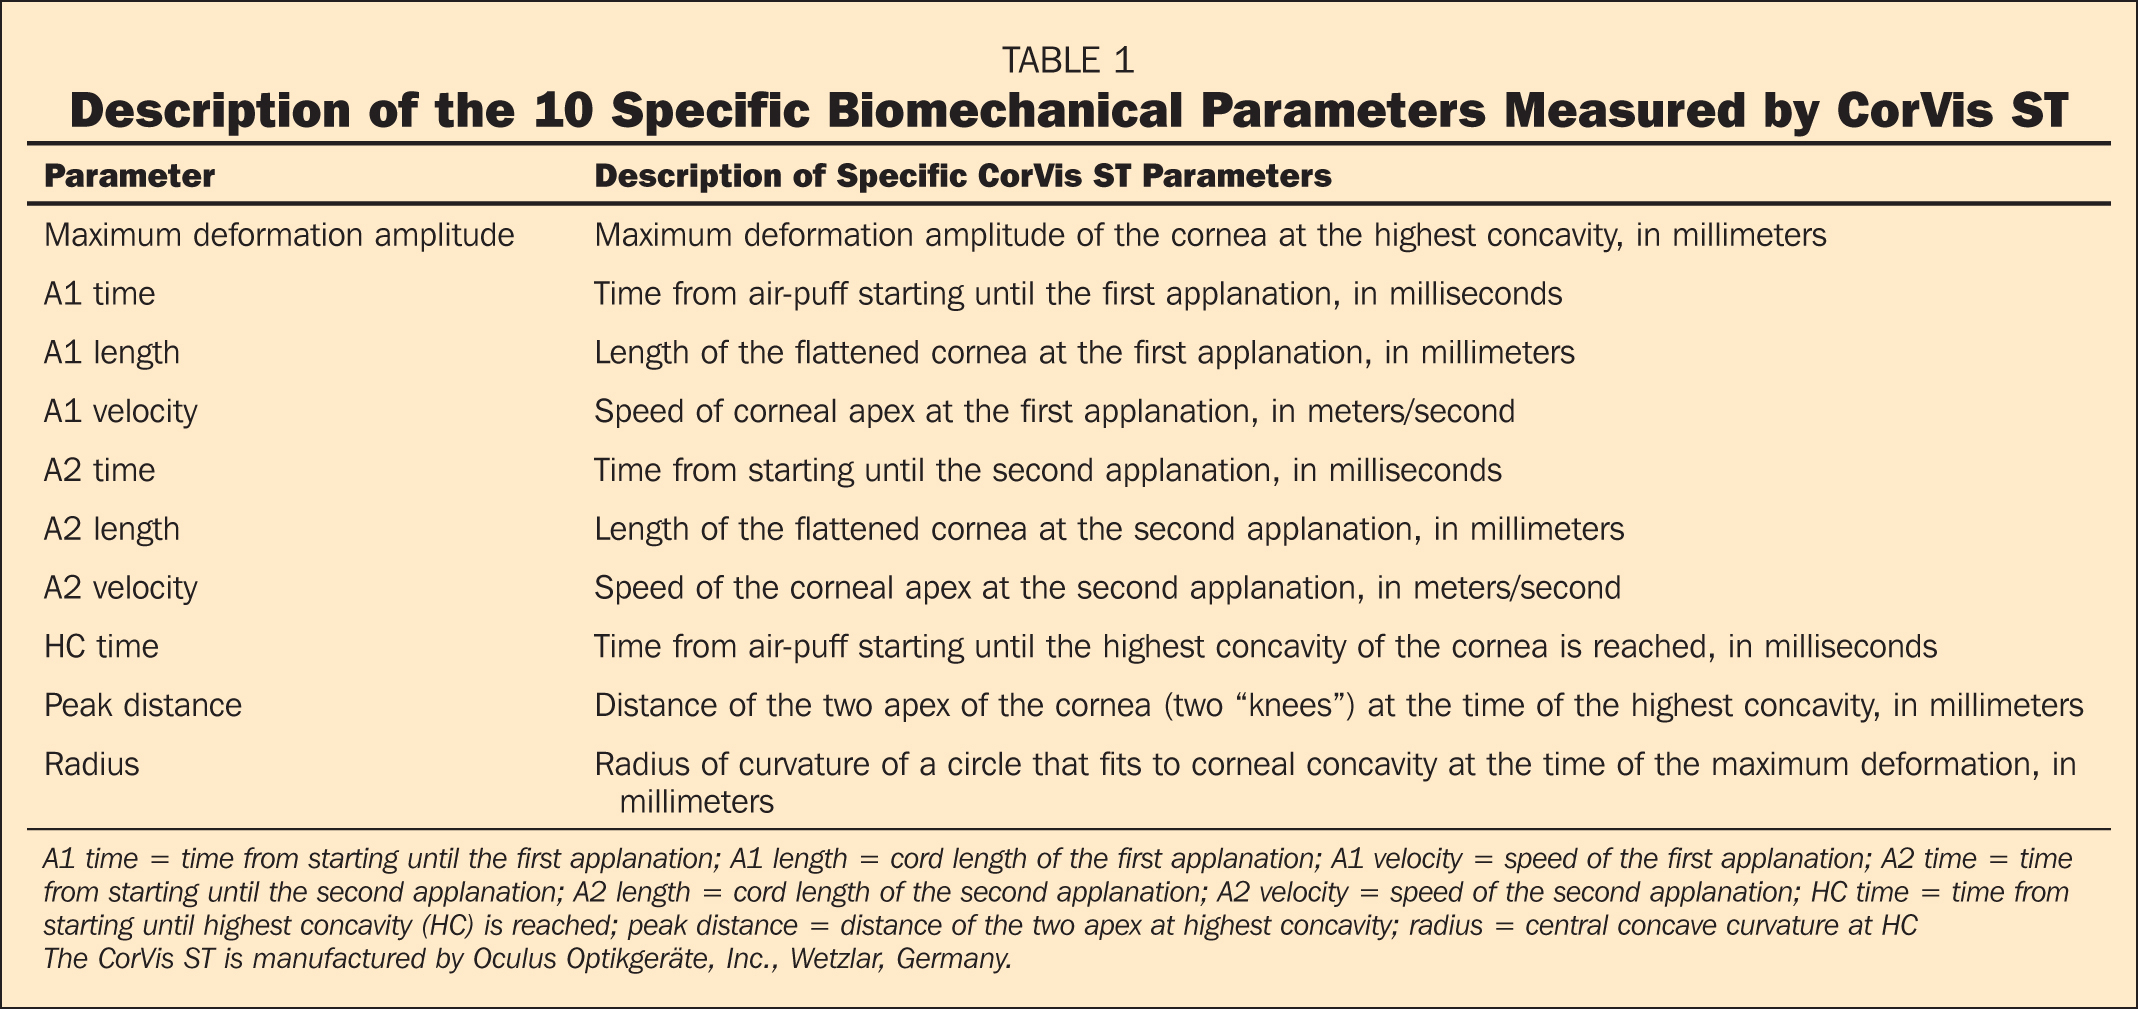 Description of the 10 Specific Biomechanical Parameters Measured by CorVis ST